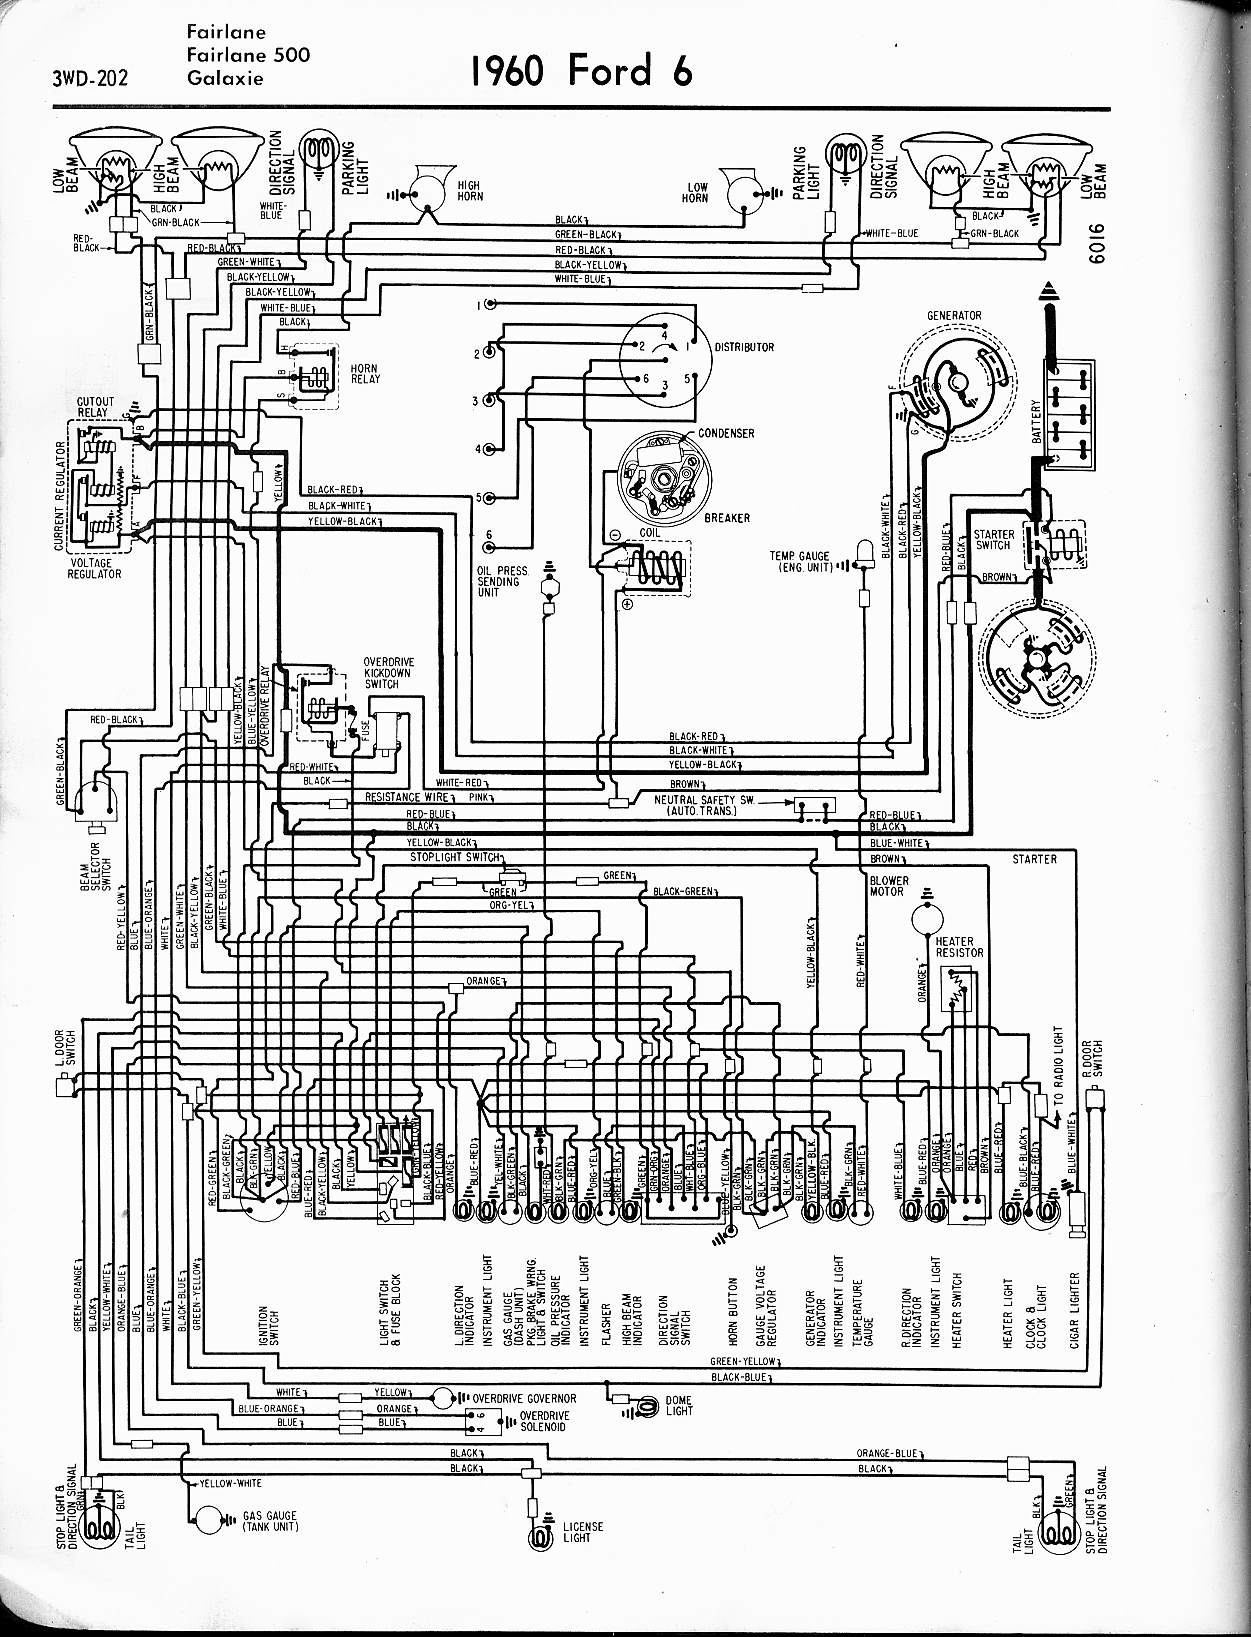 wiring diagram for 1960 chevy truck online diy wiring diagrams u2022 rh dancesalsa co Ford Ranchero Wiring Diagrams 1965 ford falcon wiring diagram